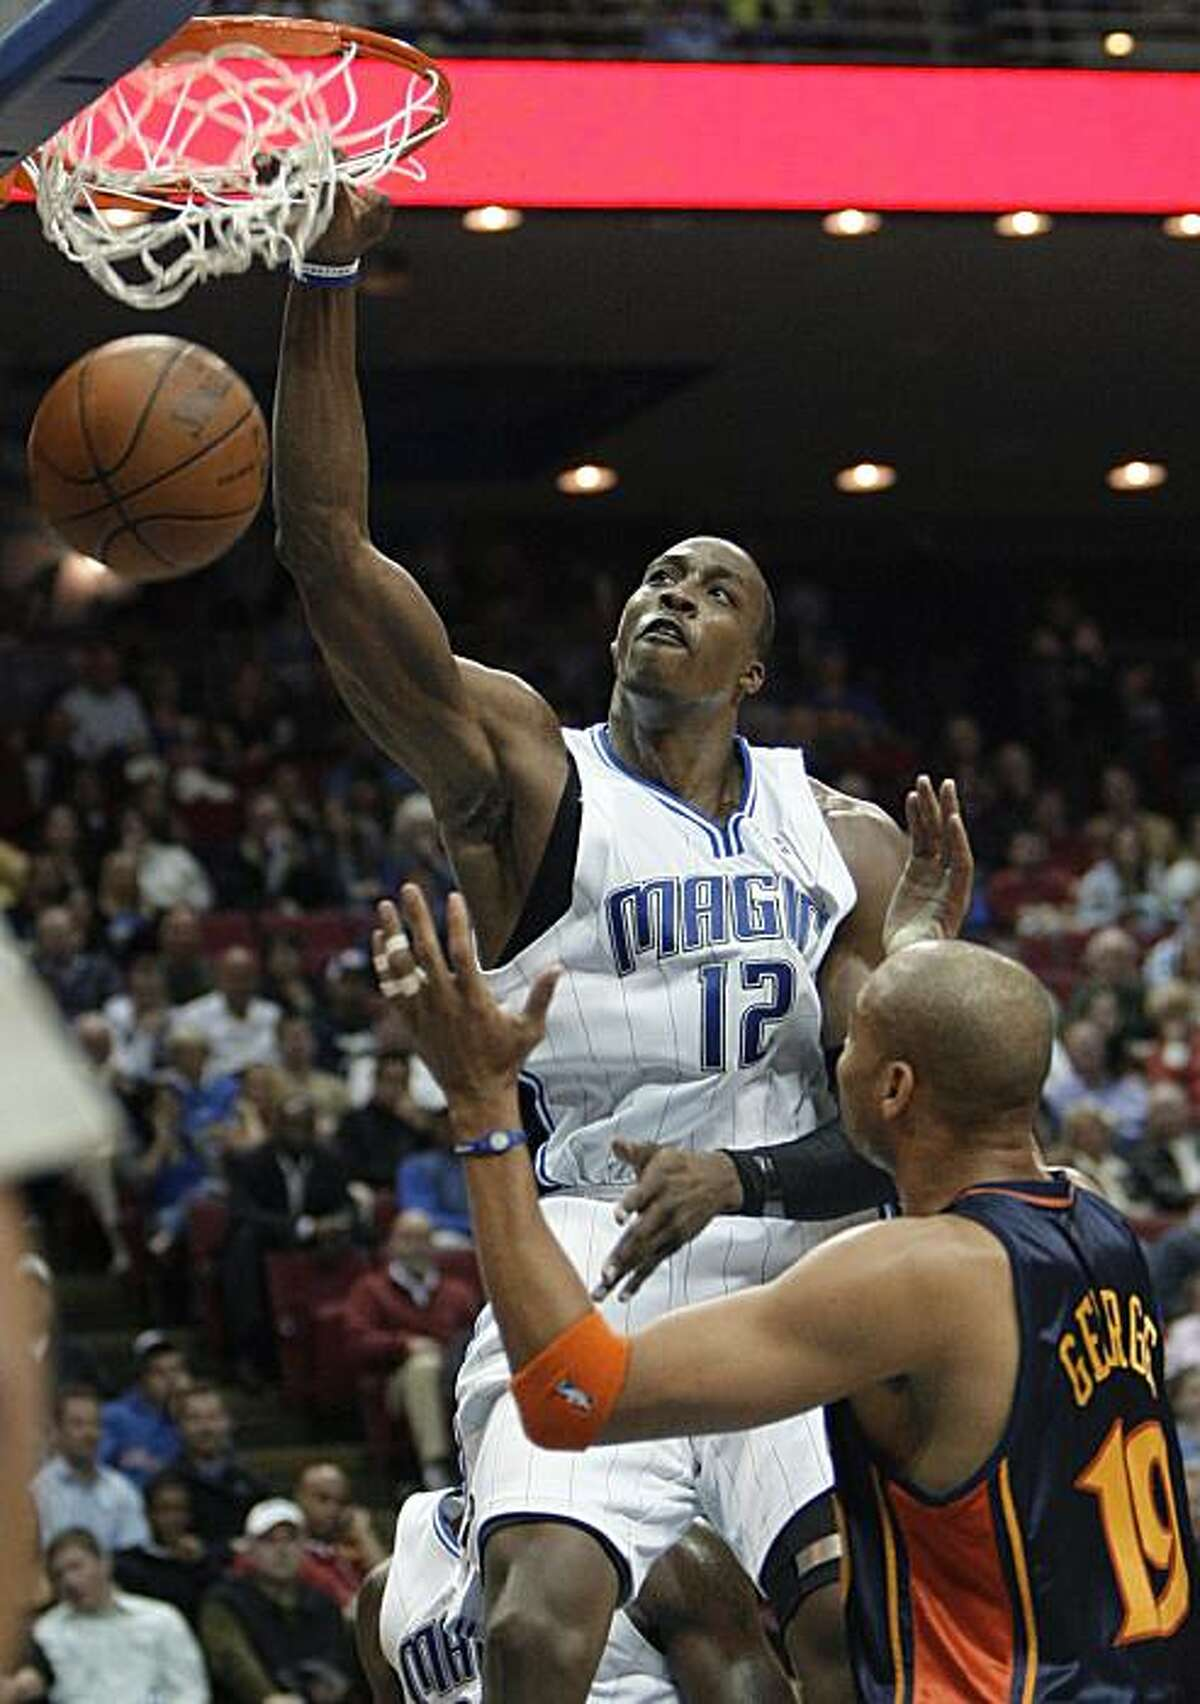 Orlando Magic center Dwight Howard (12) dunks over Golden State Warriors forward Devean George (19) during the second half of an NBA basketball game in Orlando, Fla., Wednesday, March 3, 2010. Orlando won 117-90.